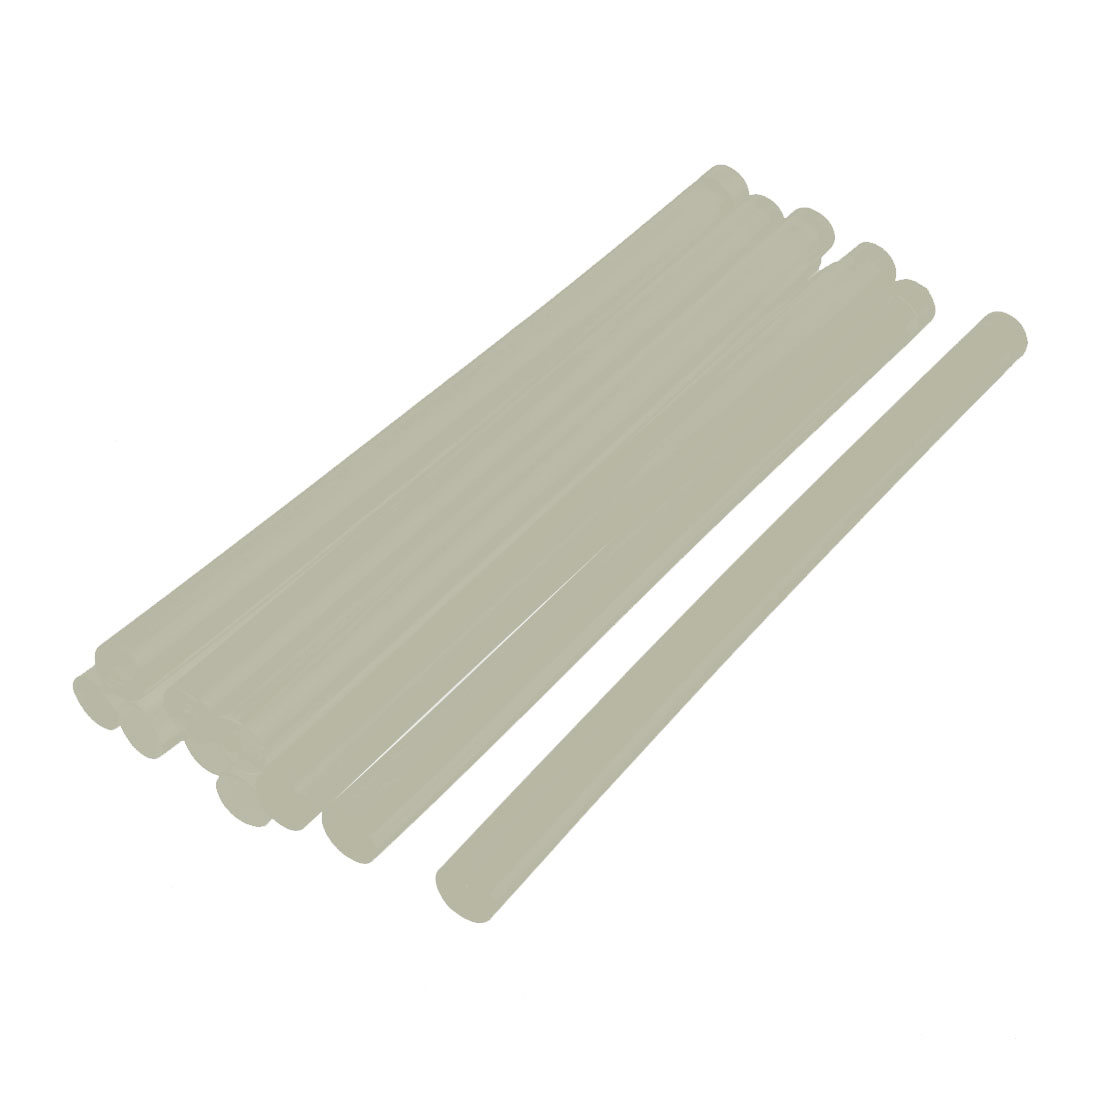 10Pcs 177mm x 11mm Hot Melt Glue Stick Clear for Electric Tool Heating Glue by Unique-Bargains